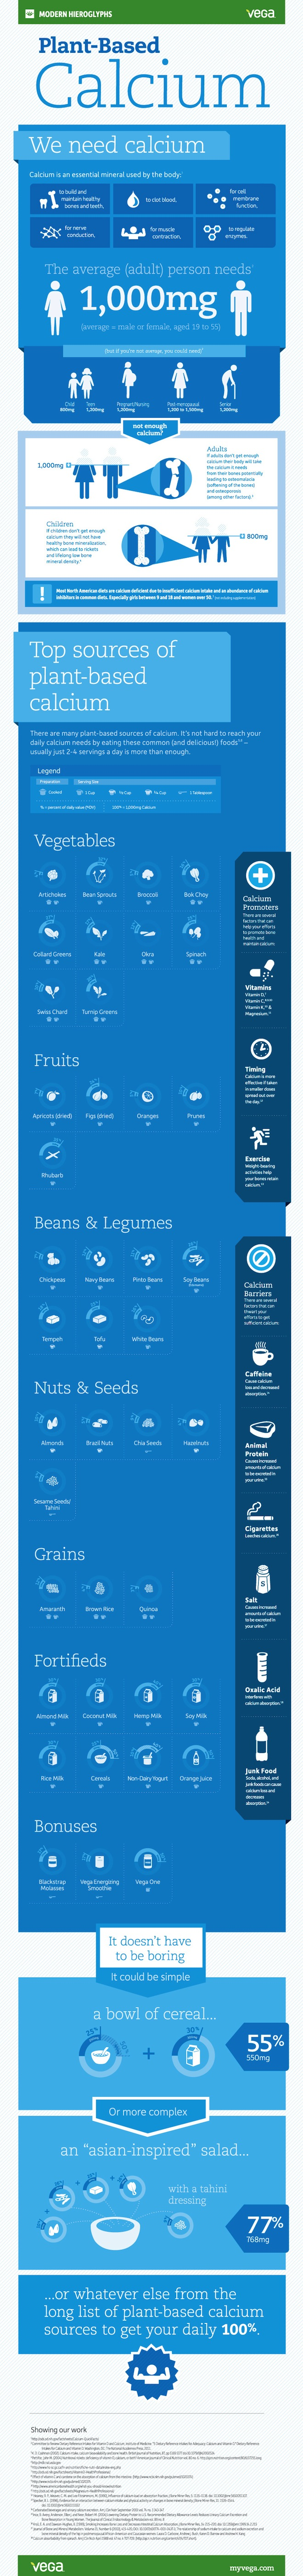 Plant-Based Calcium Sources Infographic